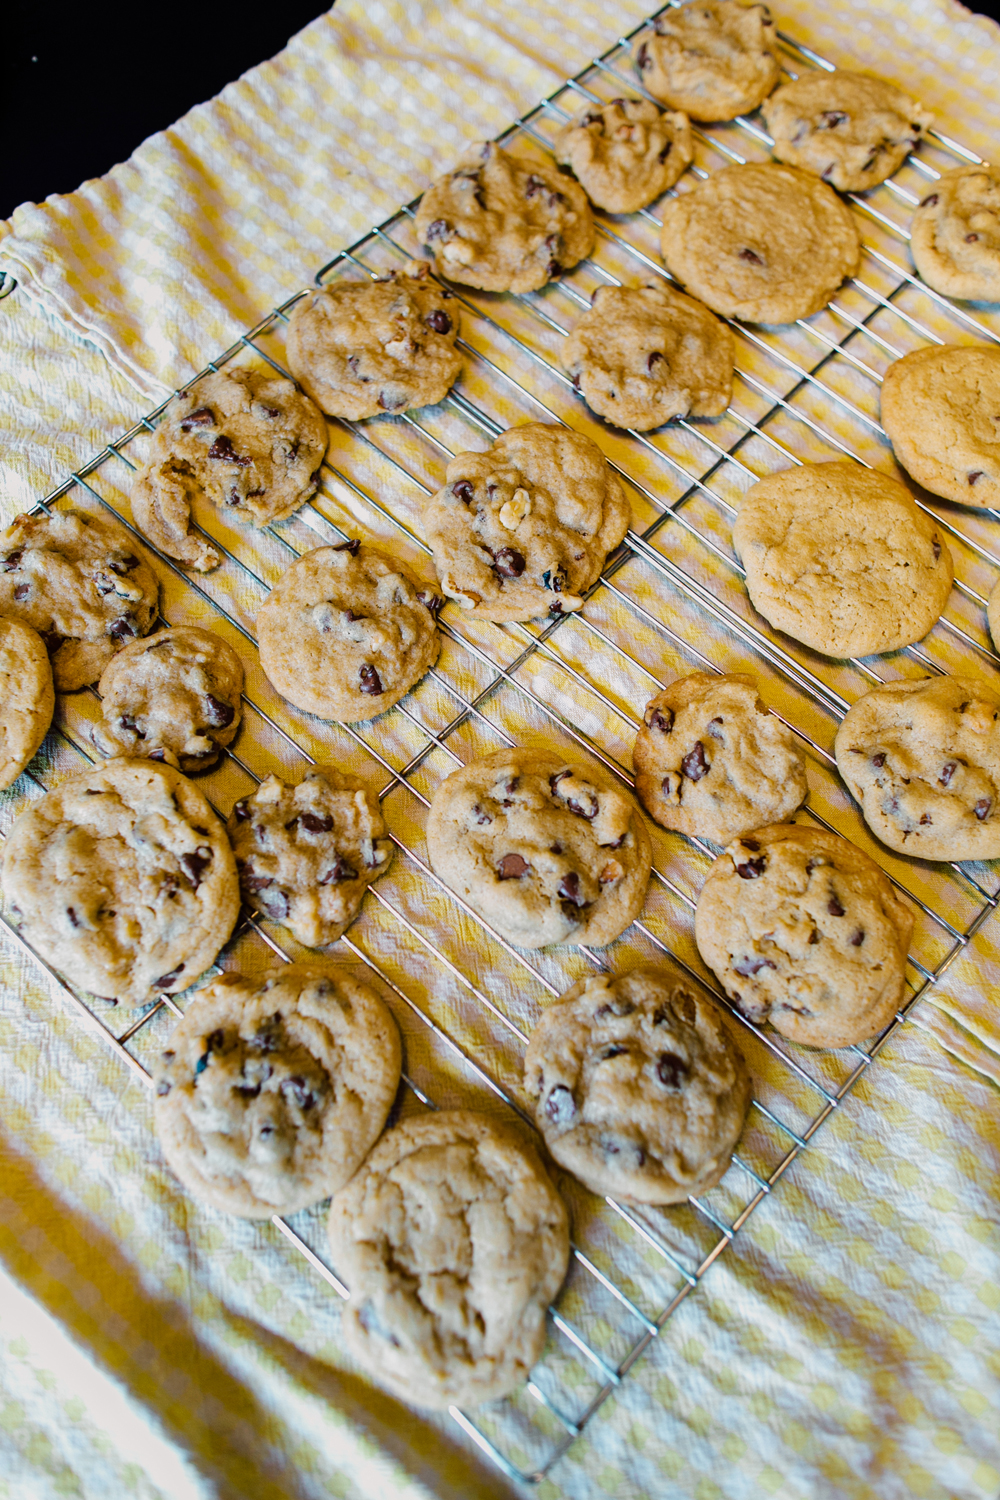 031-bellingham-lifestyle-photographer-katheryn-moran-chocolate-chip-cookie-baking.jpg